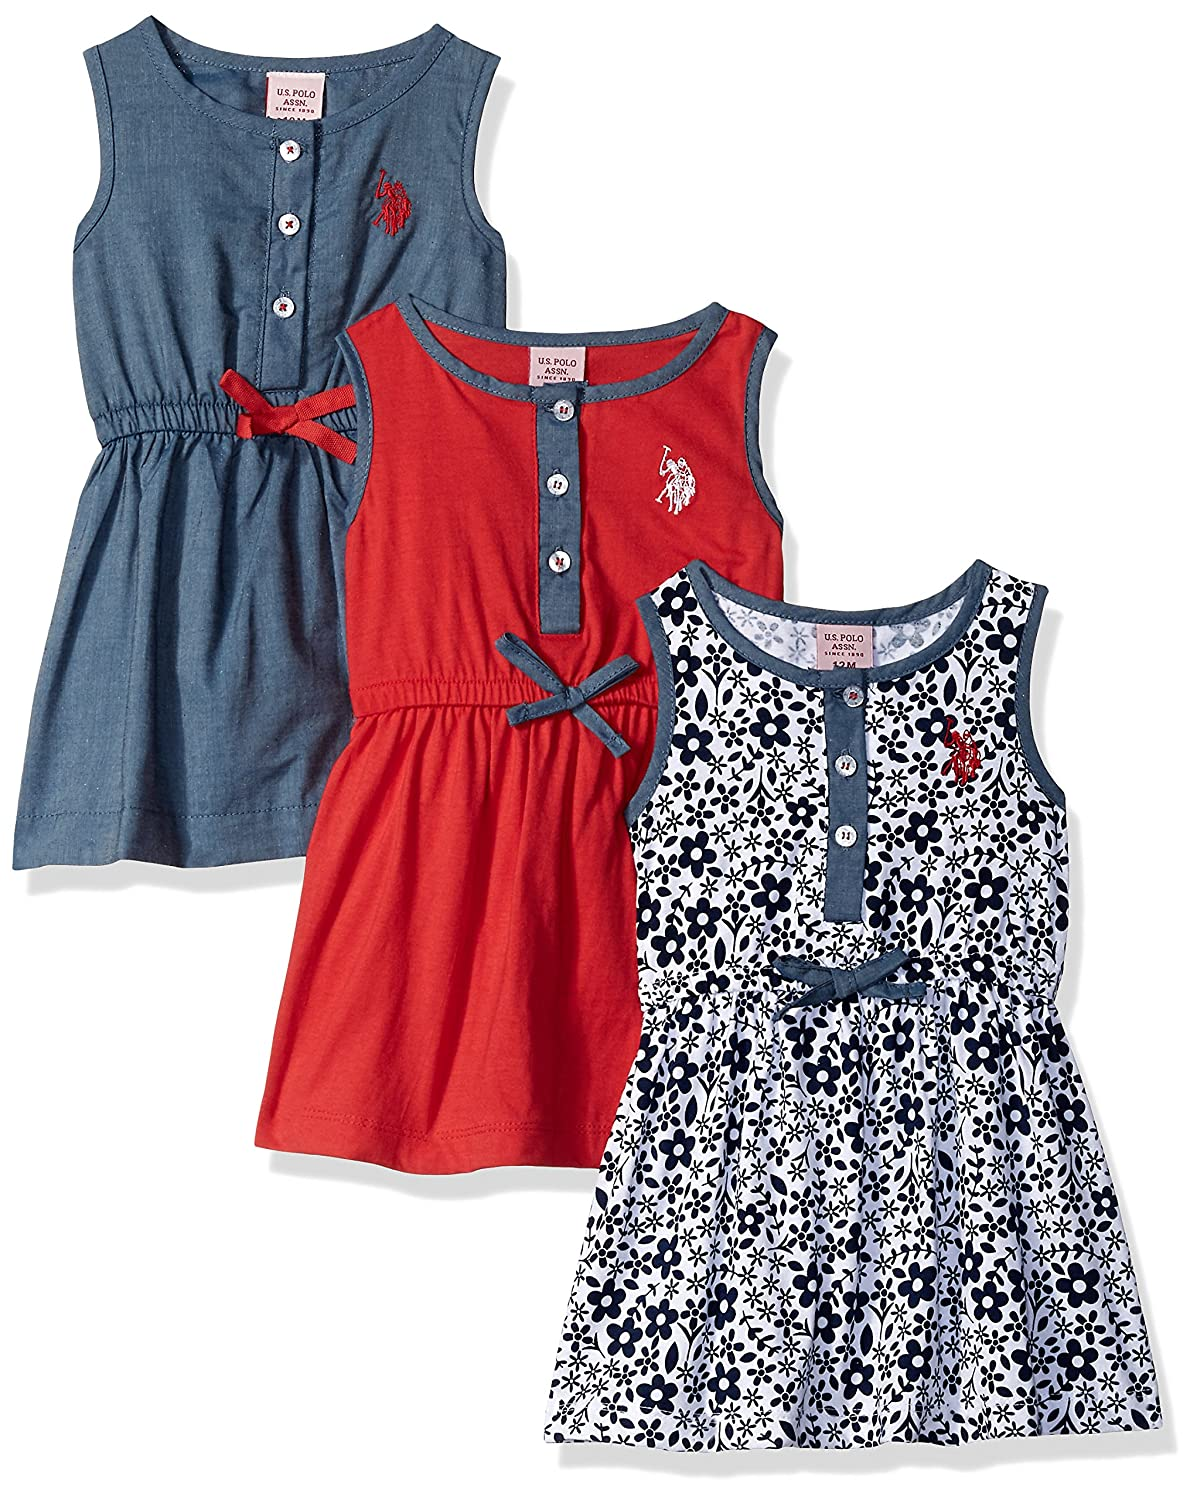 U.S. Polo Assn. Baby Girls Multi Pack Dress